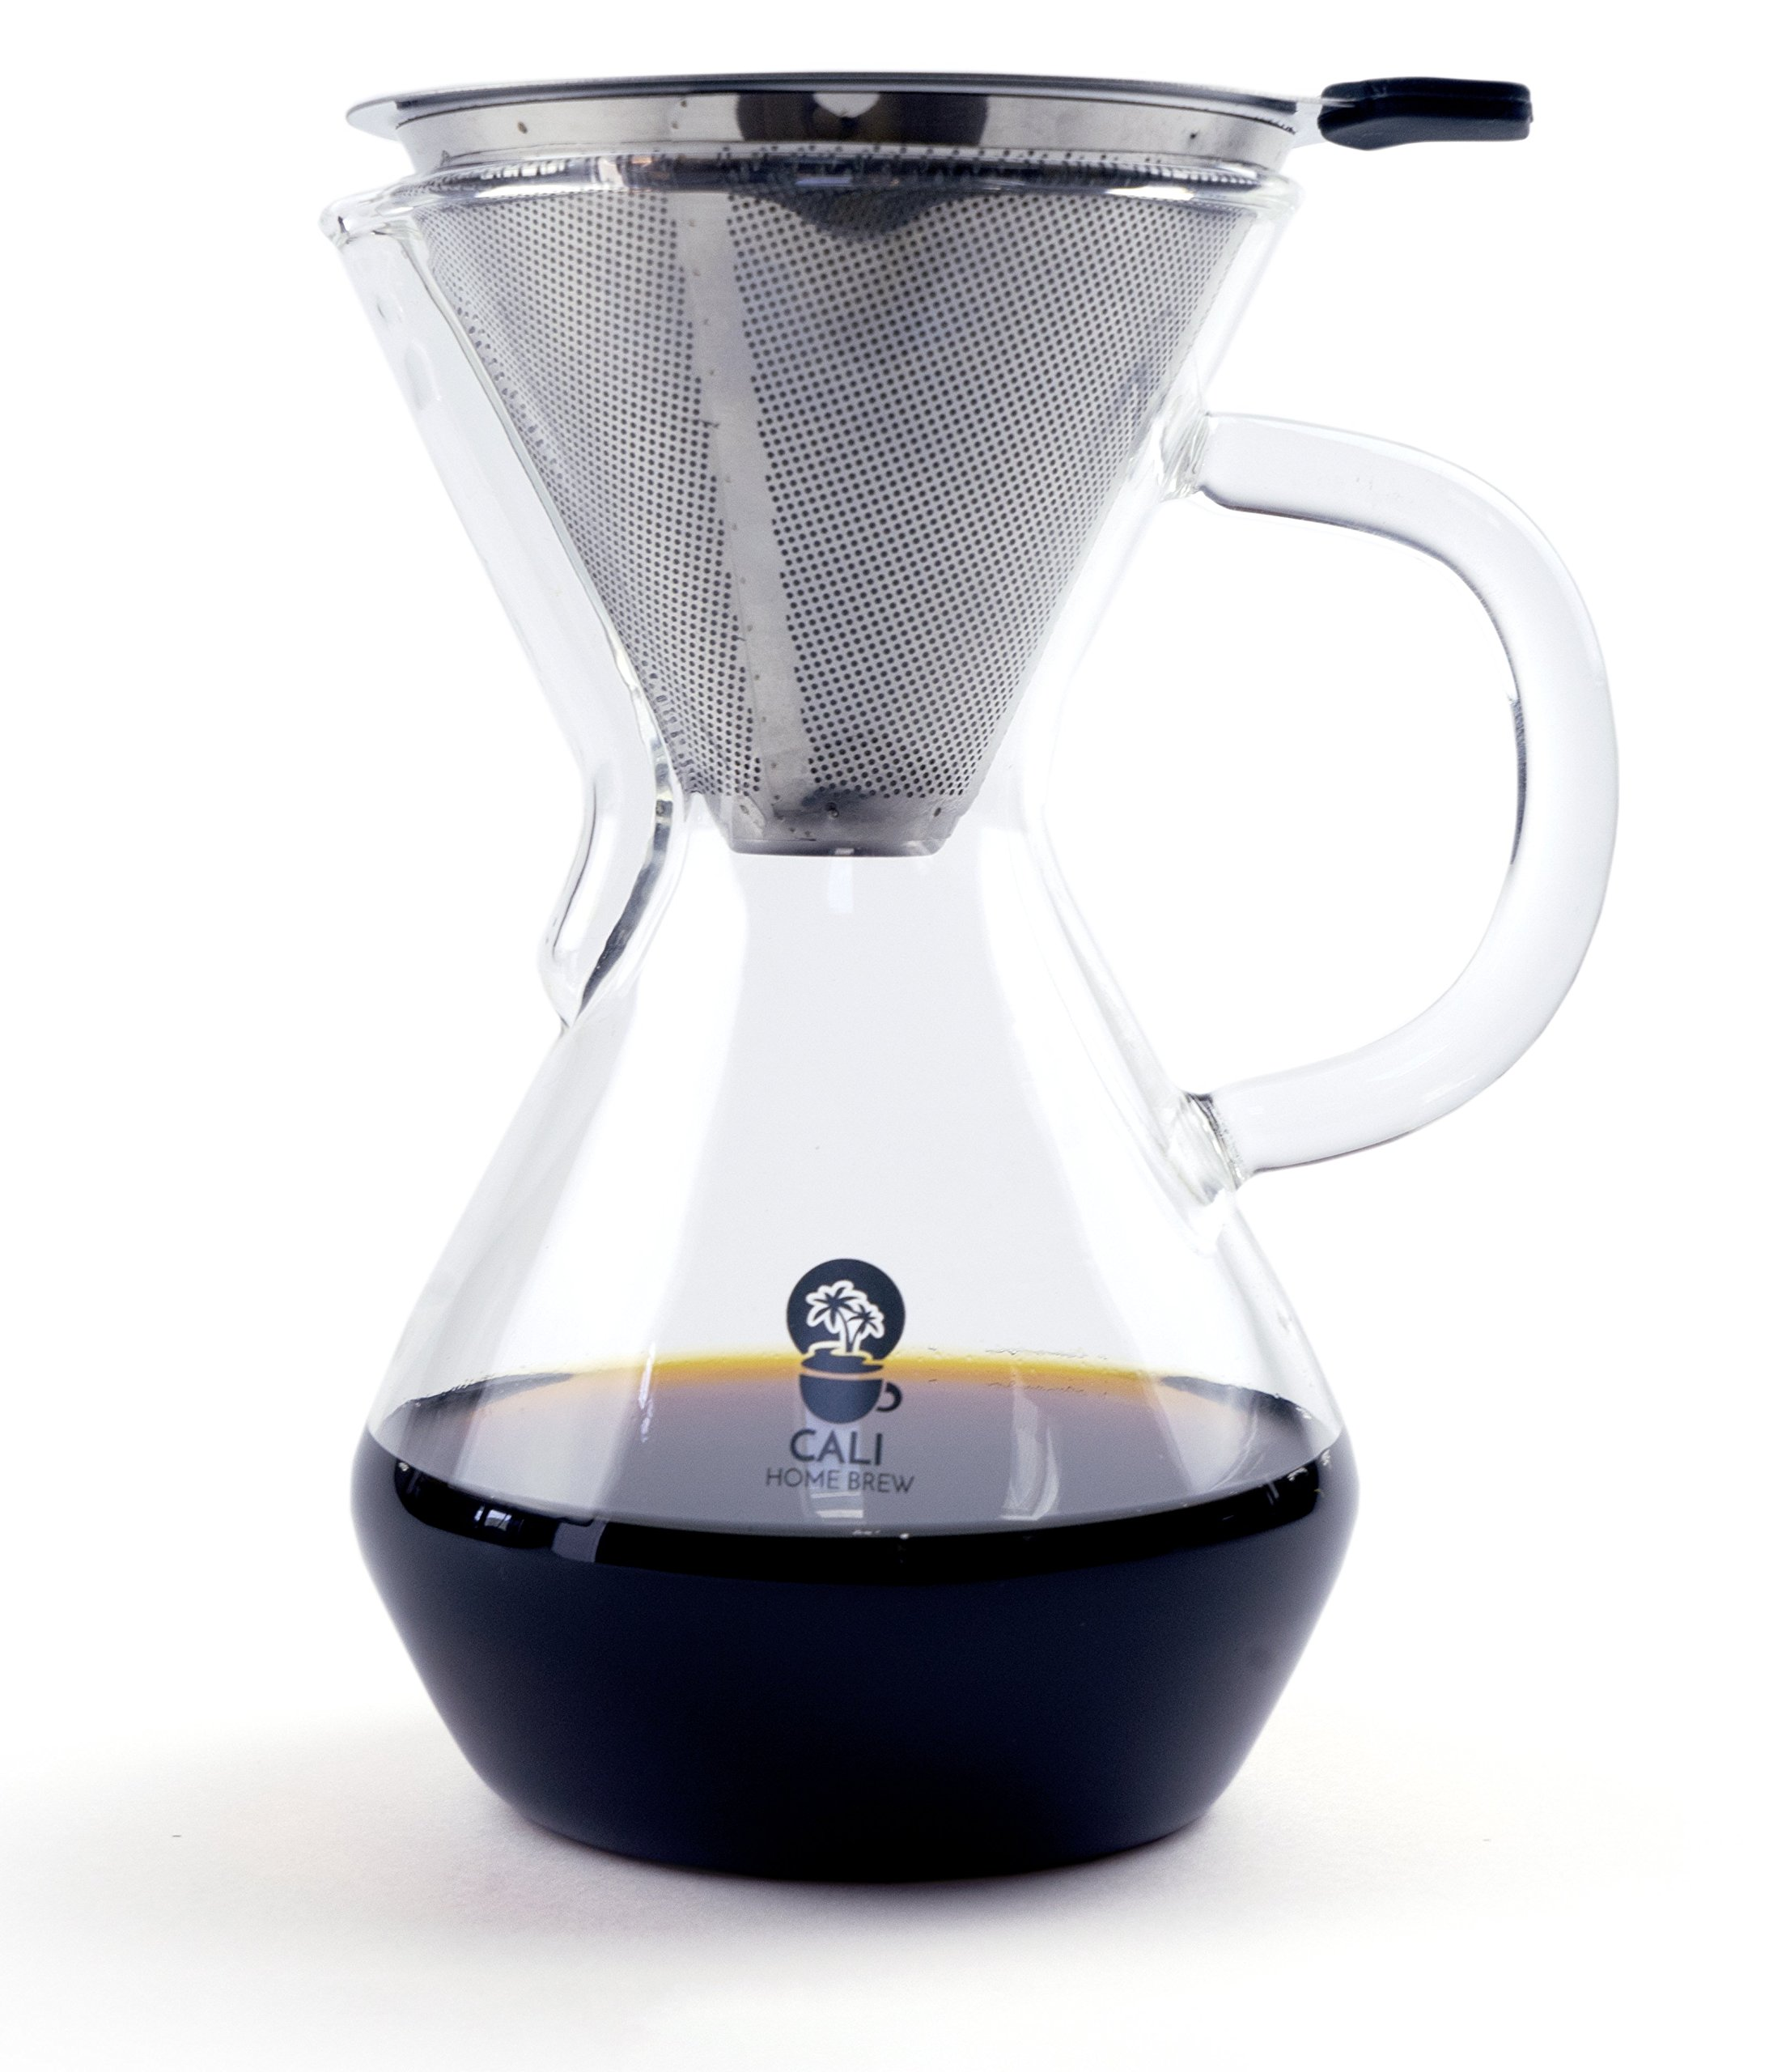 Cali Home Brew Pour Over Coffee Maker | 3 Cup/17oz Brewer | BPA Free Borosilicate Glass Carafe | Dual Layer Reusable Stainless Steel Filter | Eco Friendly | Easy to Clean Coffee Dripper | Free Ebook